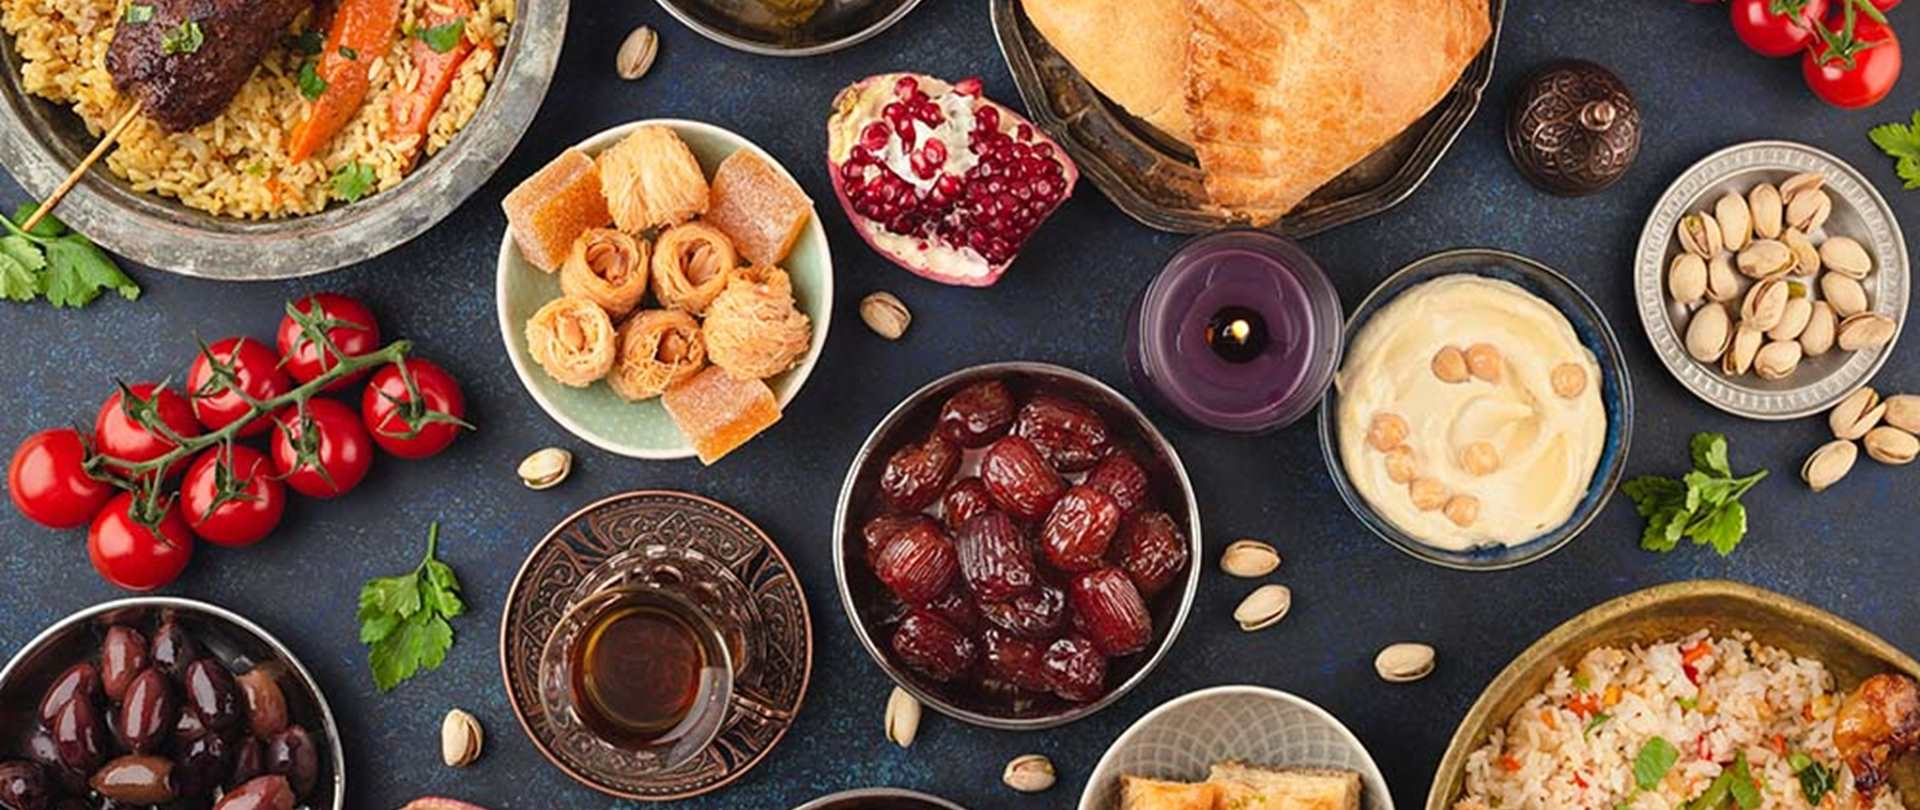 A mixture of foods to be enjoyed on Ramadan